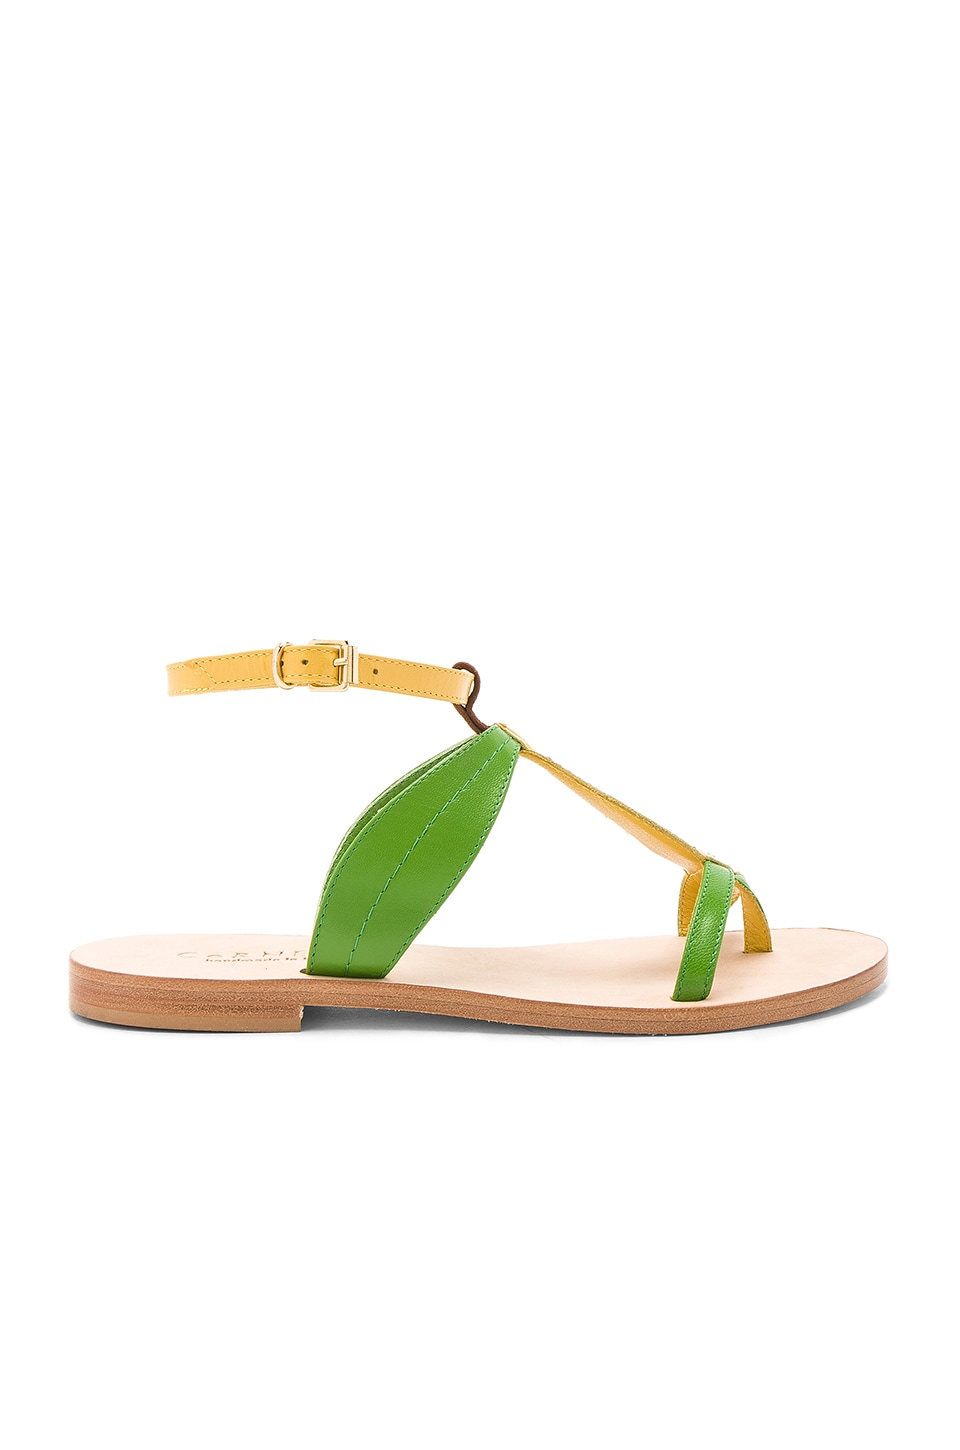 Banana Sandal by Cornetti